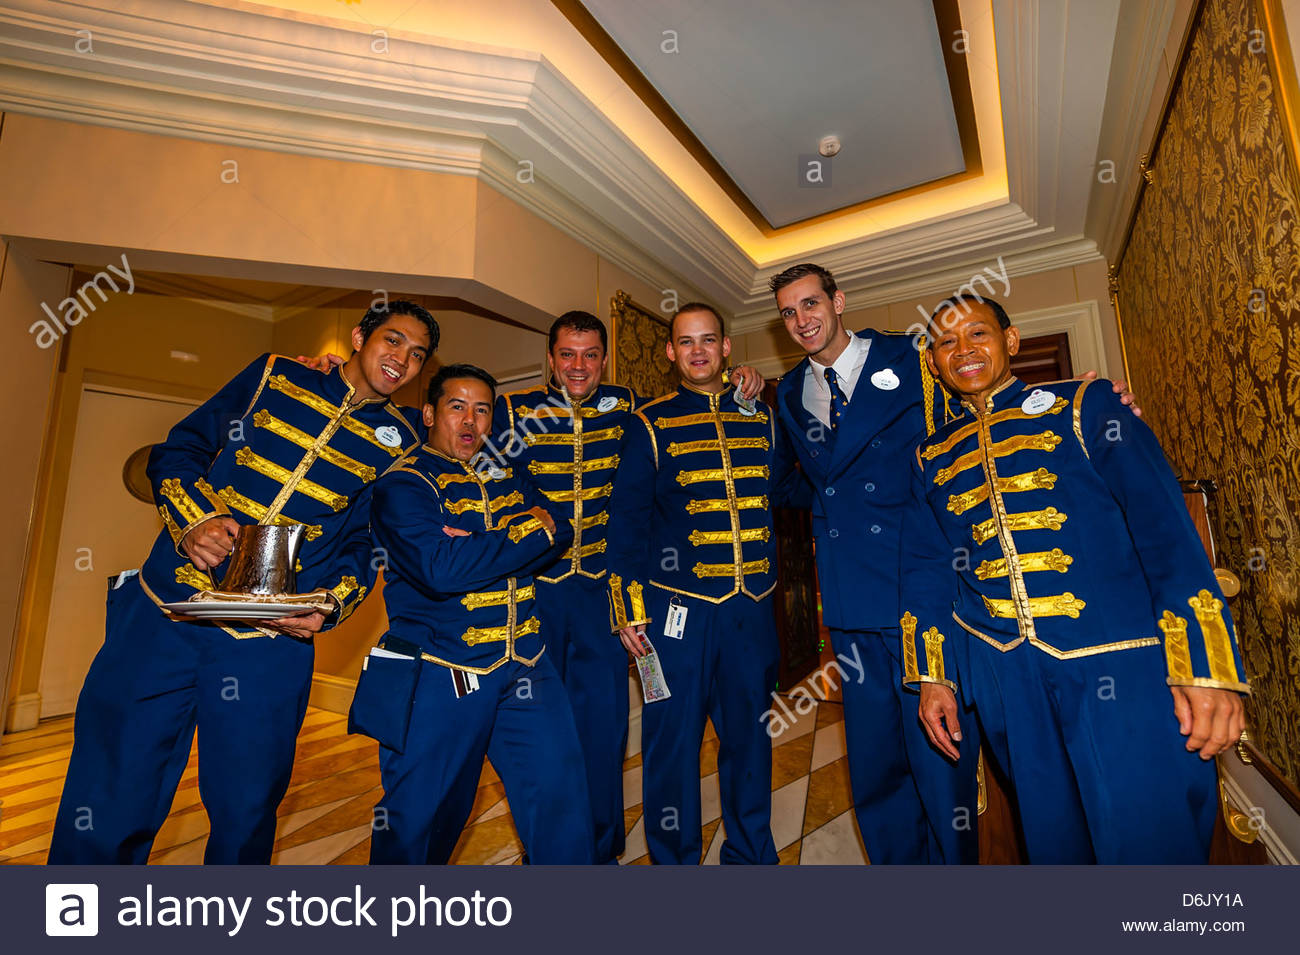 Waiters, Royal Palace restaurant, Disney Dream cruise ship sailing between Florida and the Bahamas - Stock Image